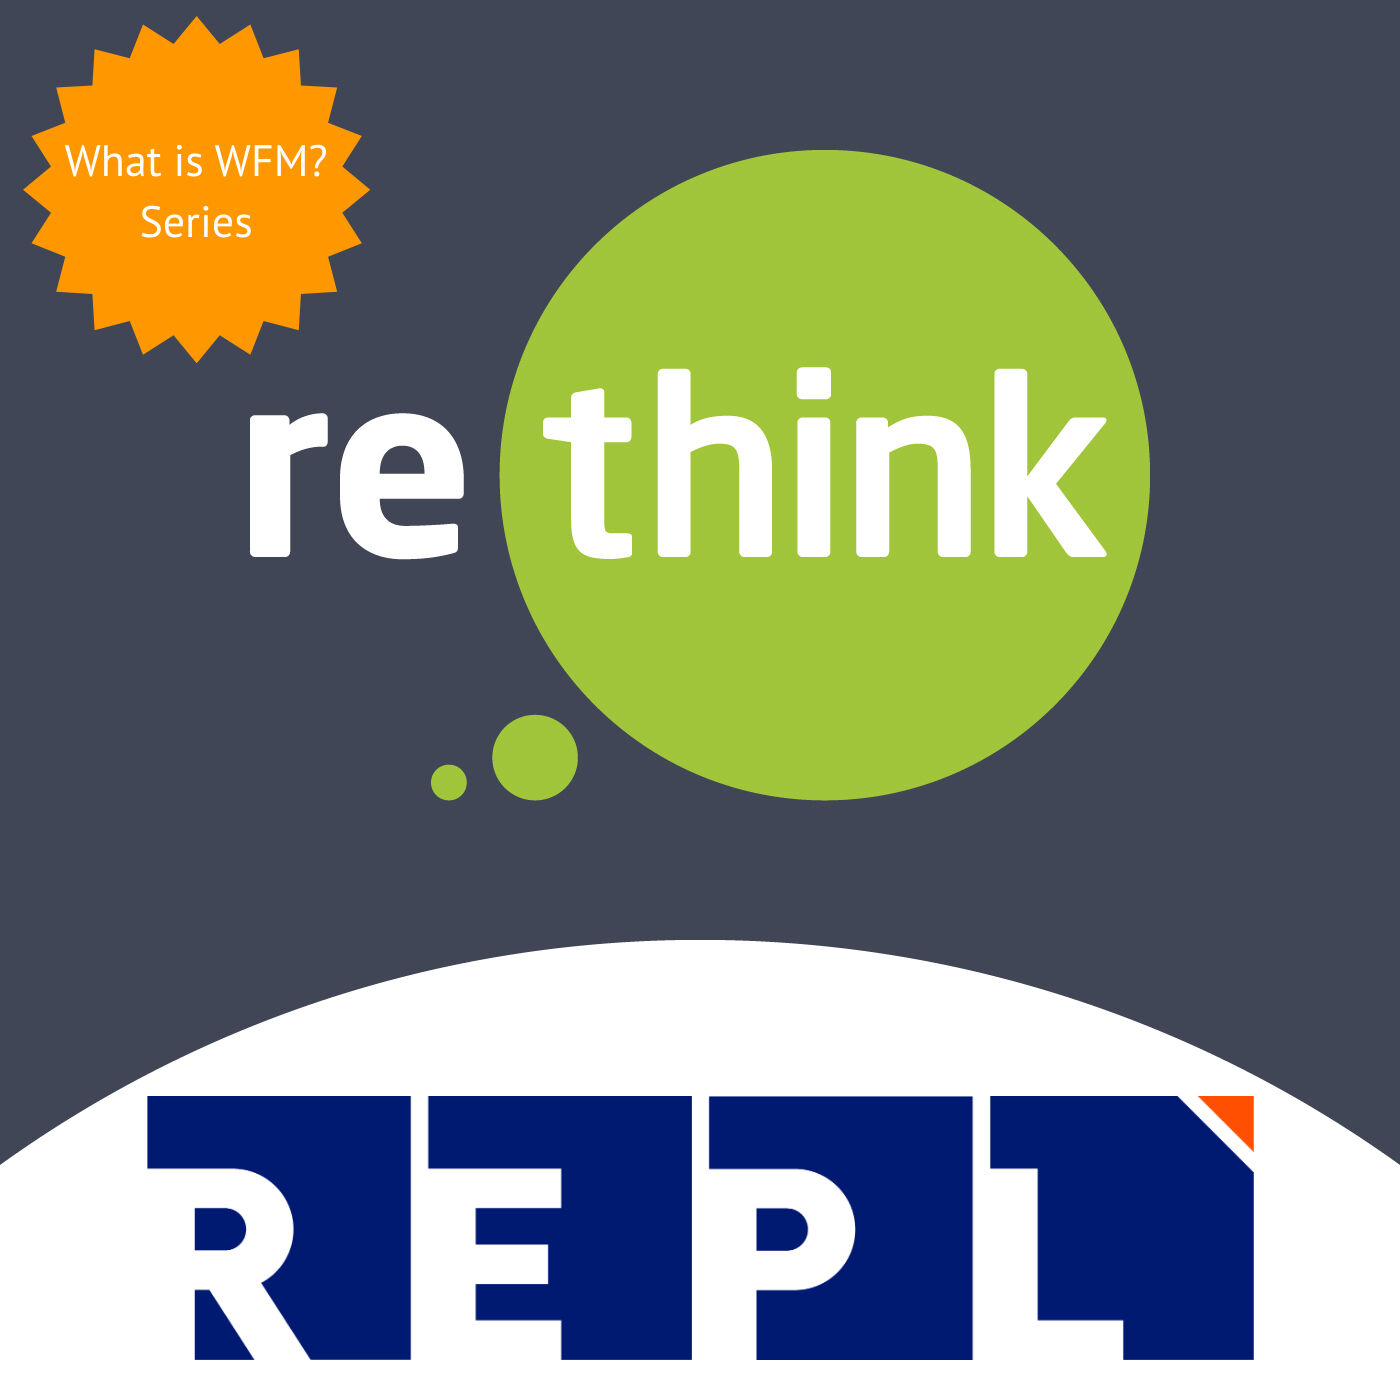 ReThink & REPL - The future of WFM